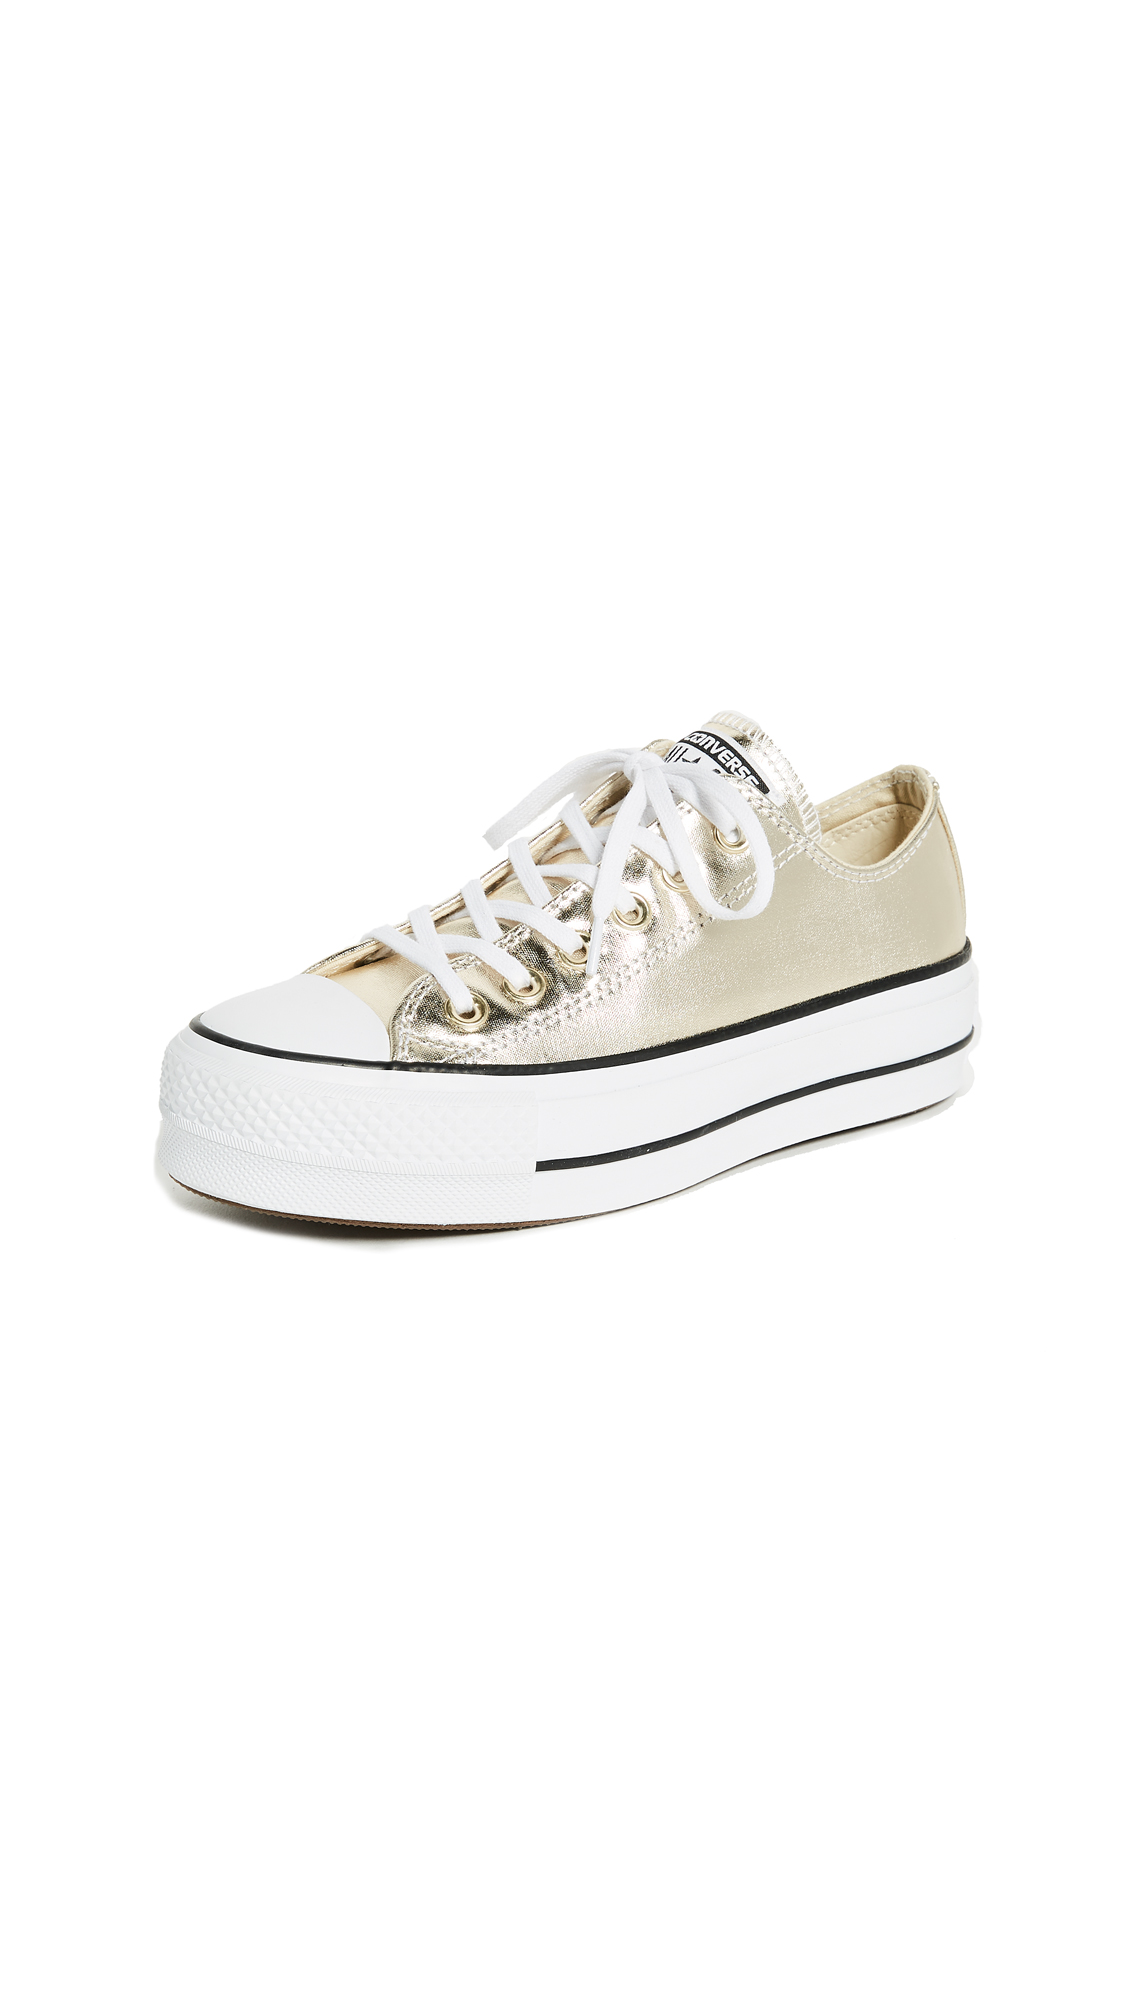 Converse Chuck Taylor All Star Lift OX Sneakers - Gold/Black/White